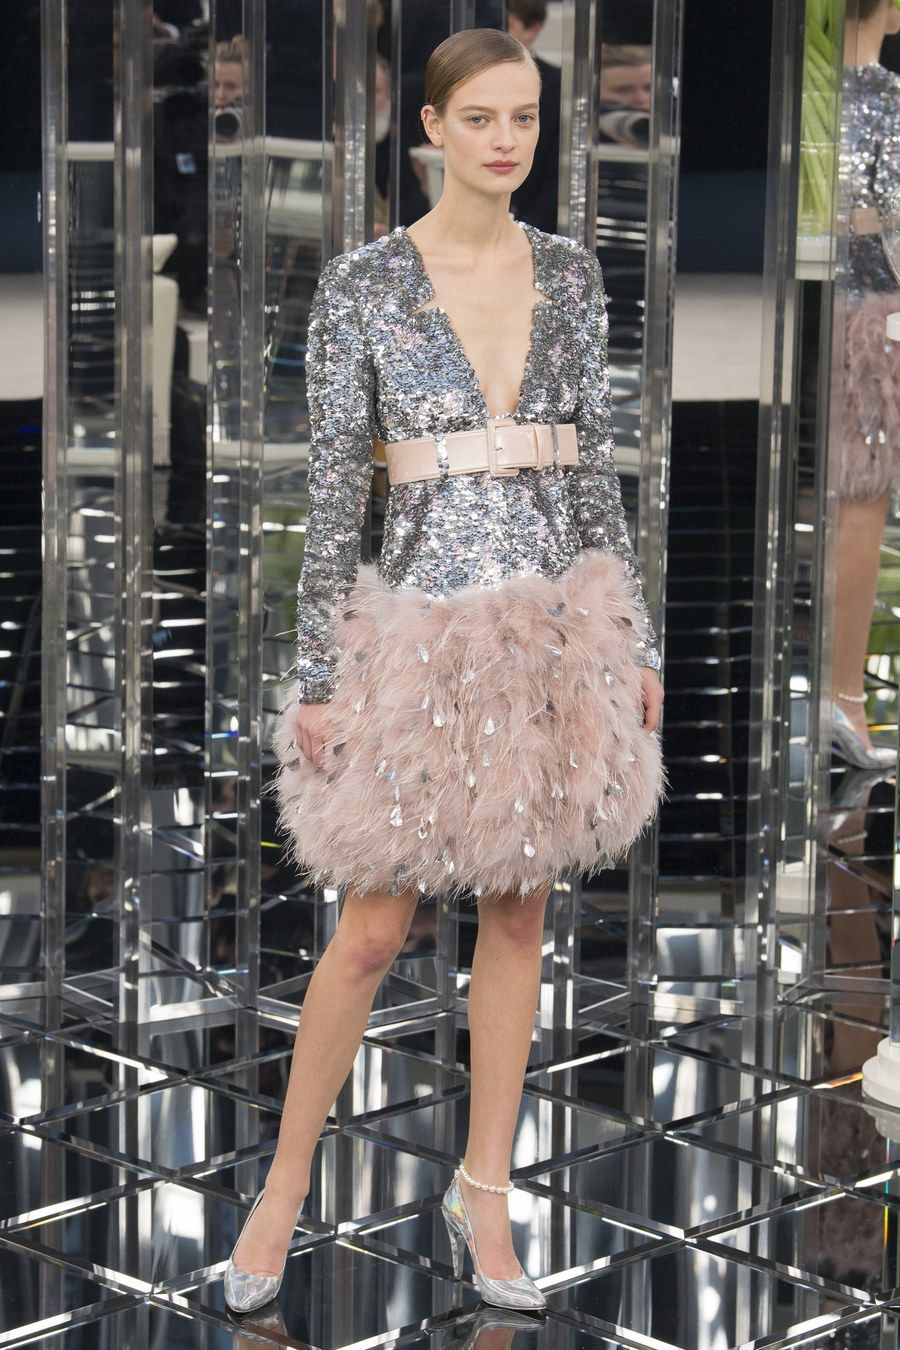 f5f5f4c4661 Chanel Spring 2017 Couture Fashion Show in 2019